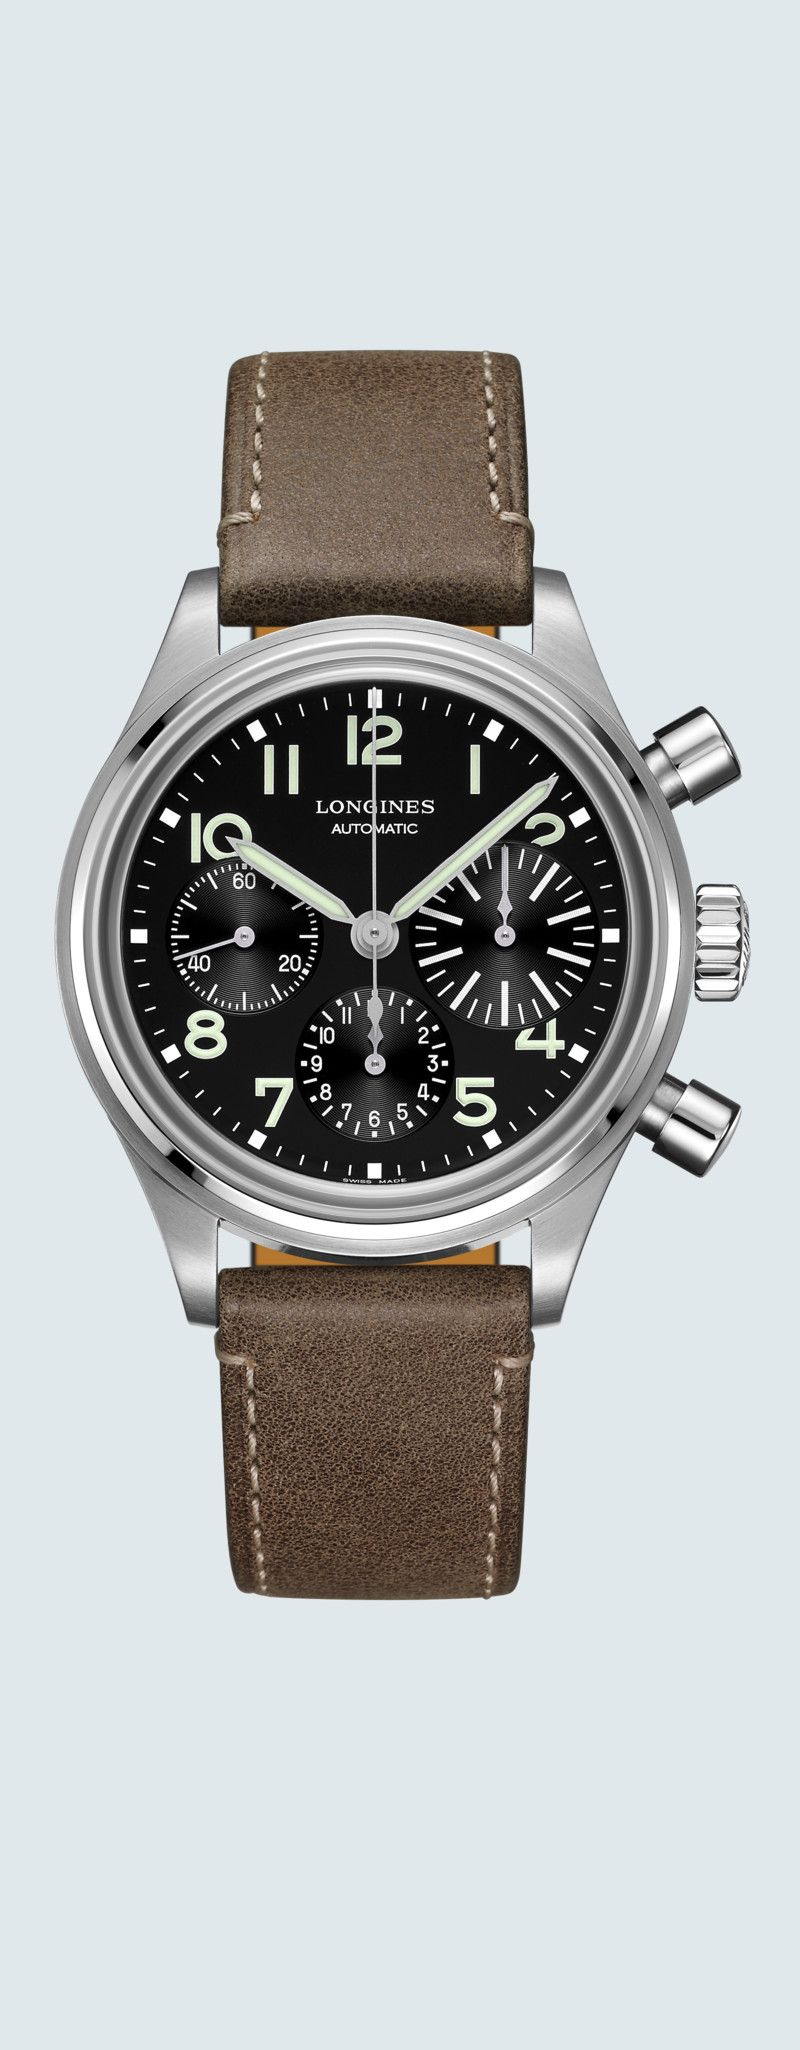 41.00 mm Stainless steel case with Black dial and Leather strap Brown strap - case zoom view